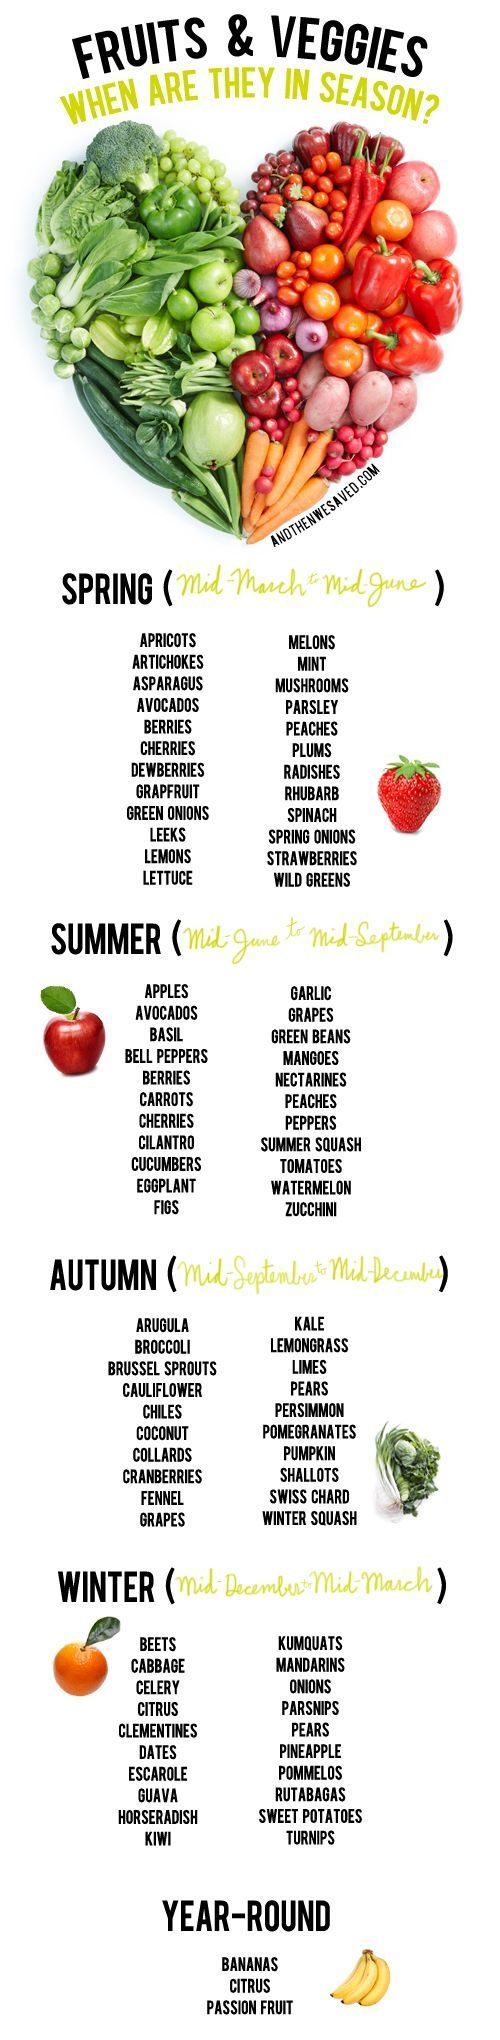 Fruits and Vegetables - When are They In Season? A Handy Guide!: